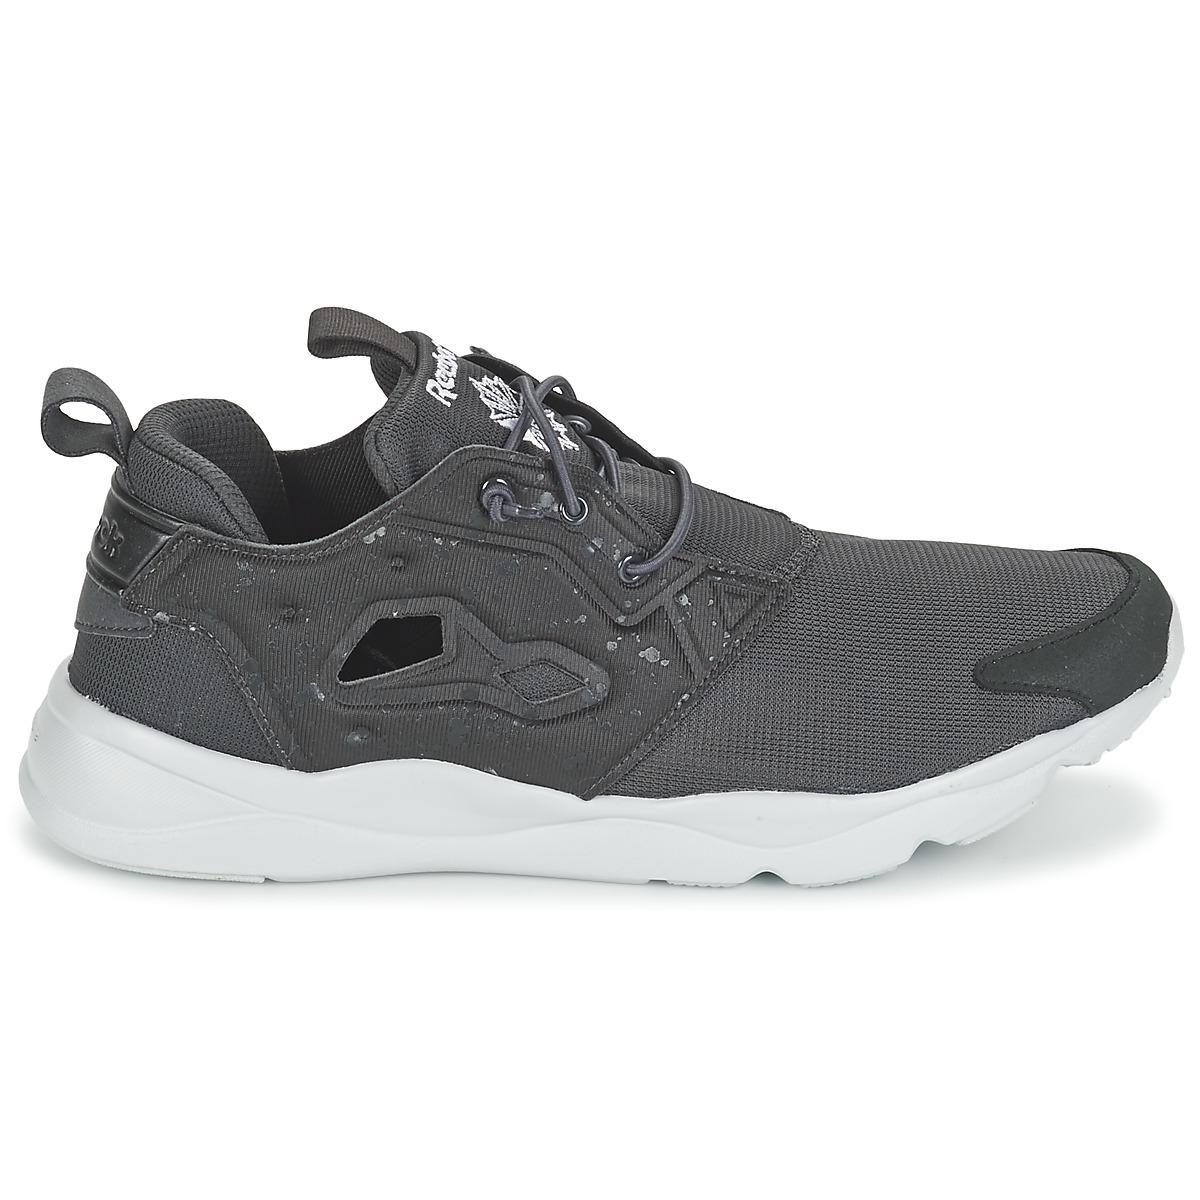 Reebok Furylite Sp Shoes (trainers) in Grey (Grey) for Men - Save 26%